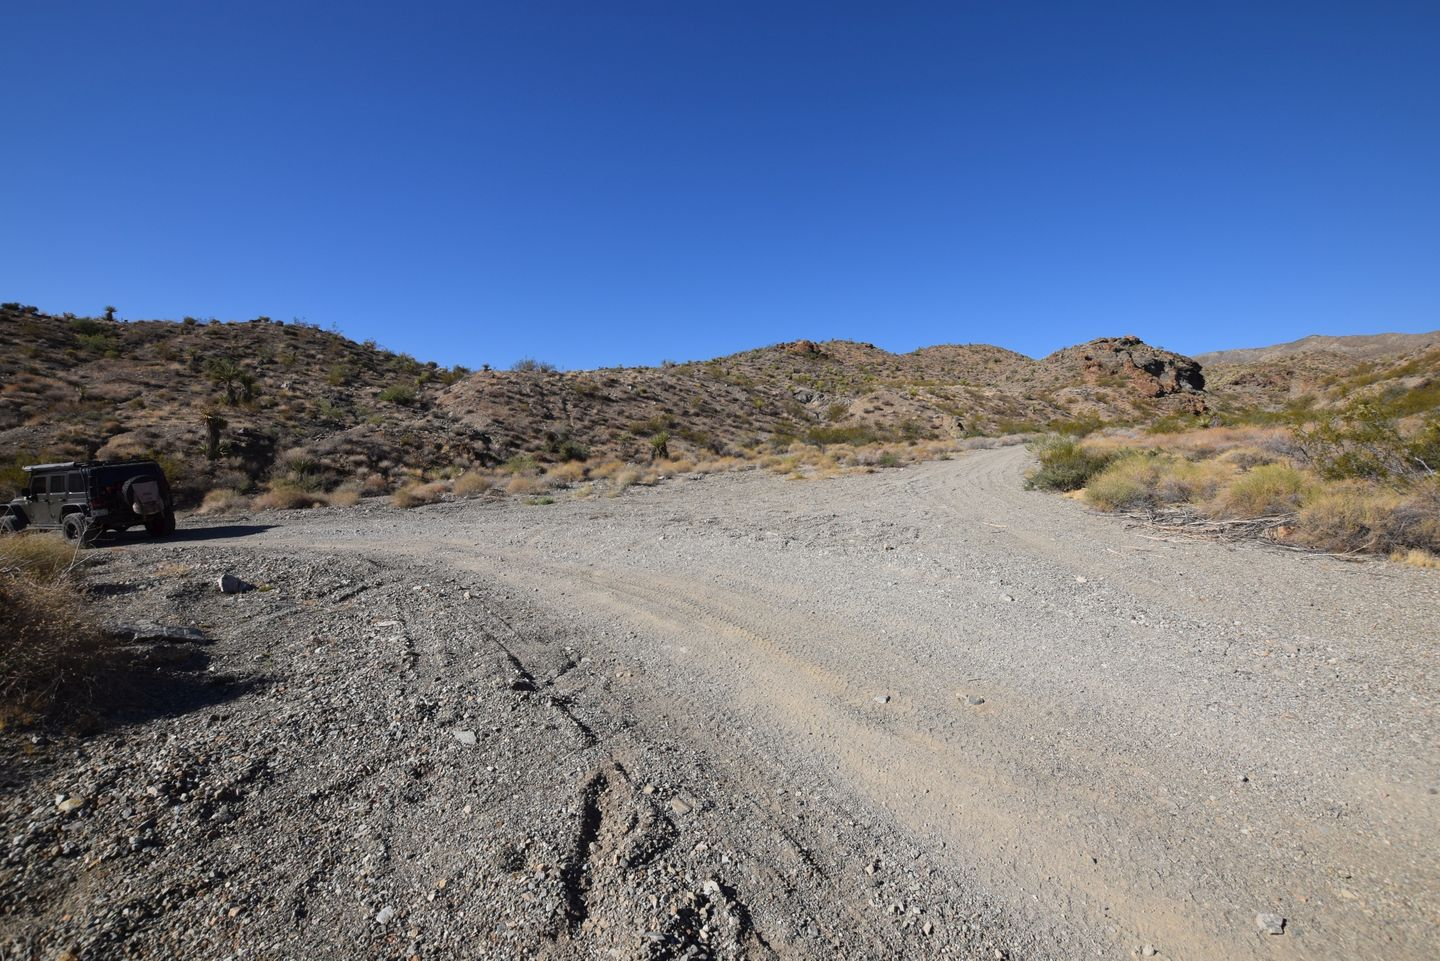 Nelson Goldmine Trail - Waypoint 2: Y Intersection